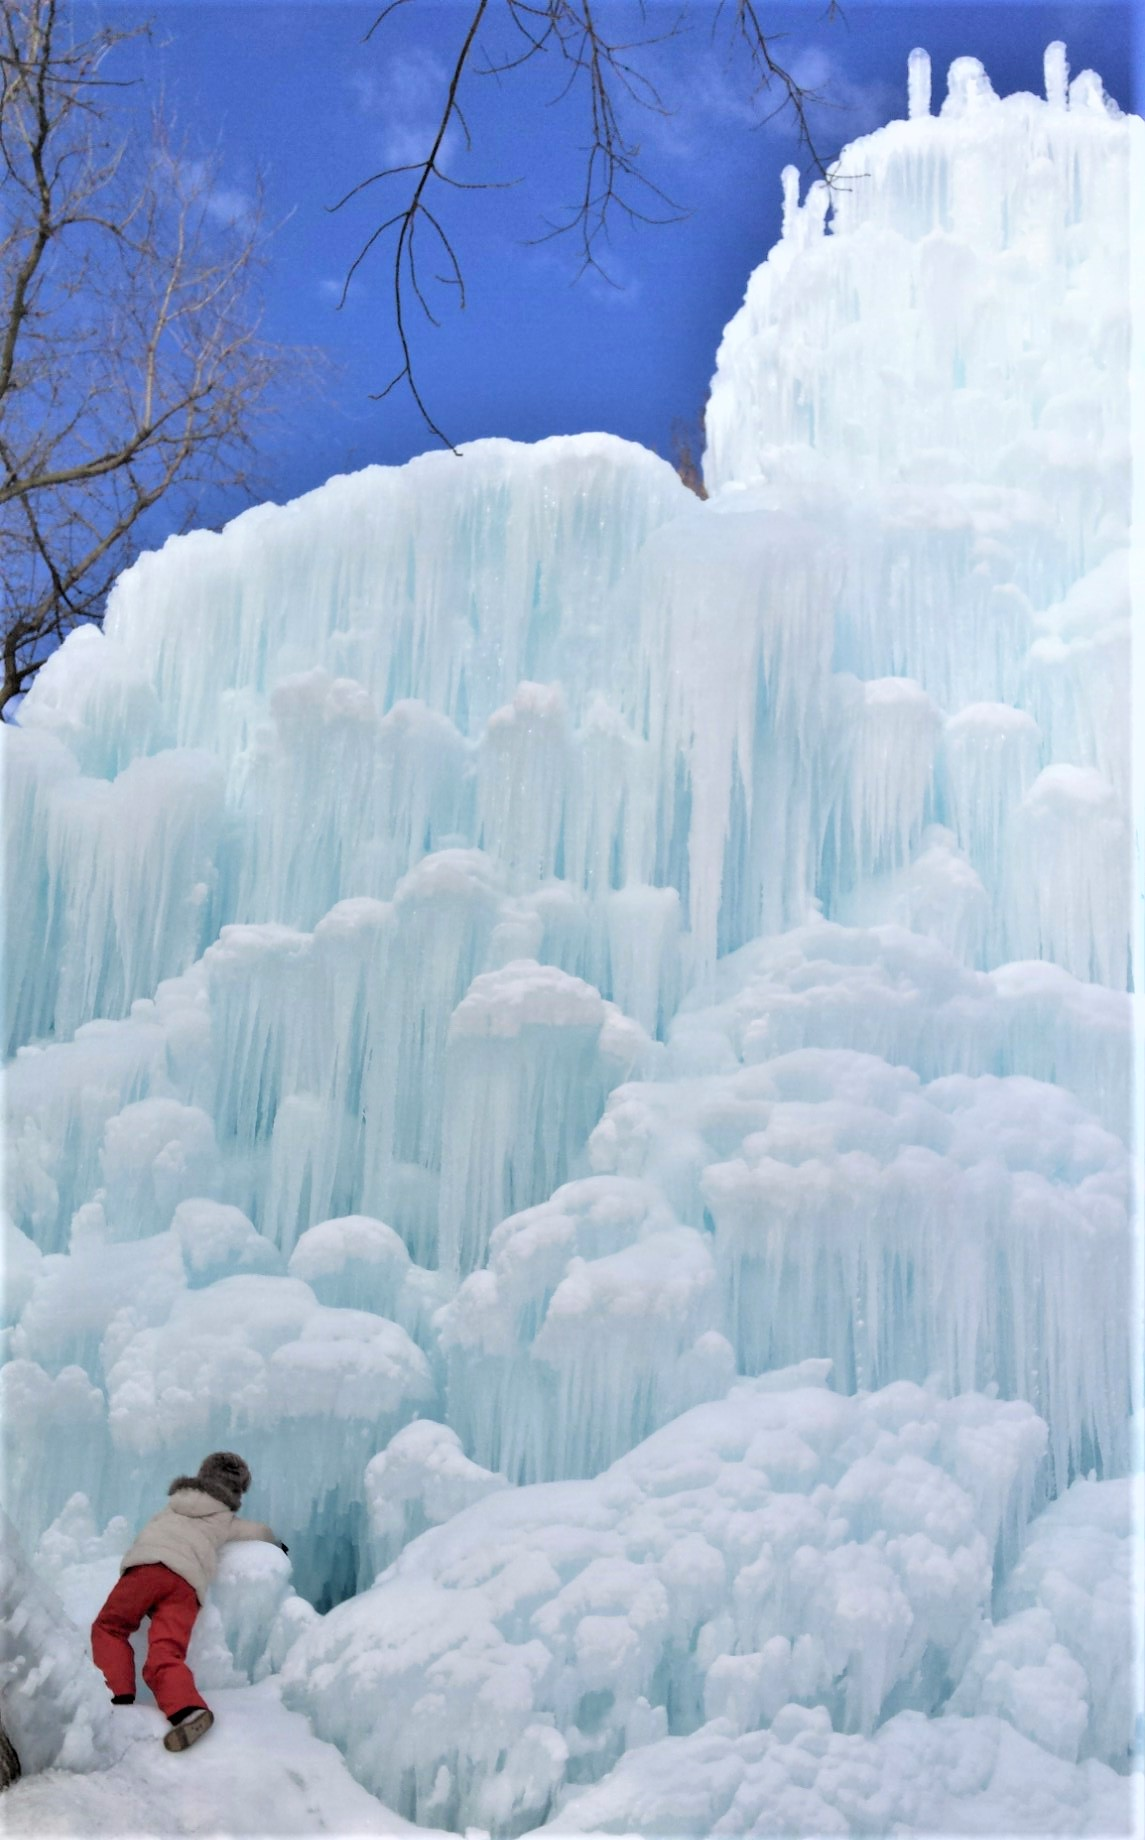 More Ice Castles in Minnesota